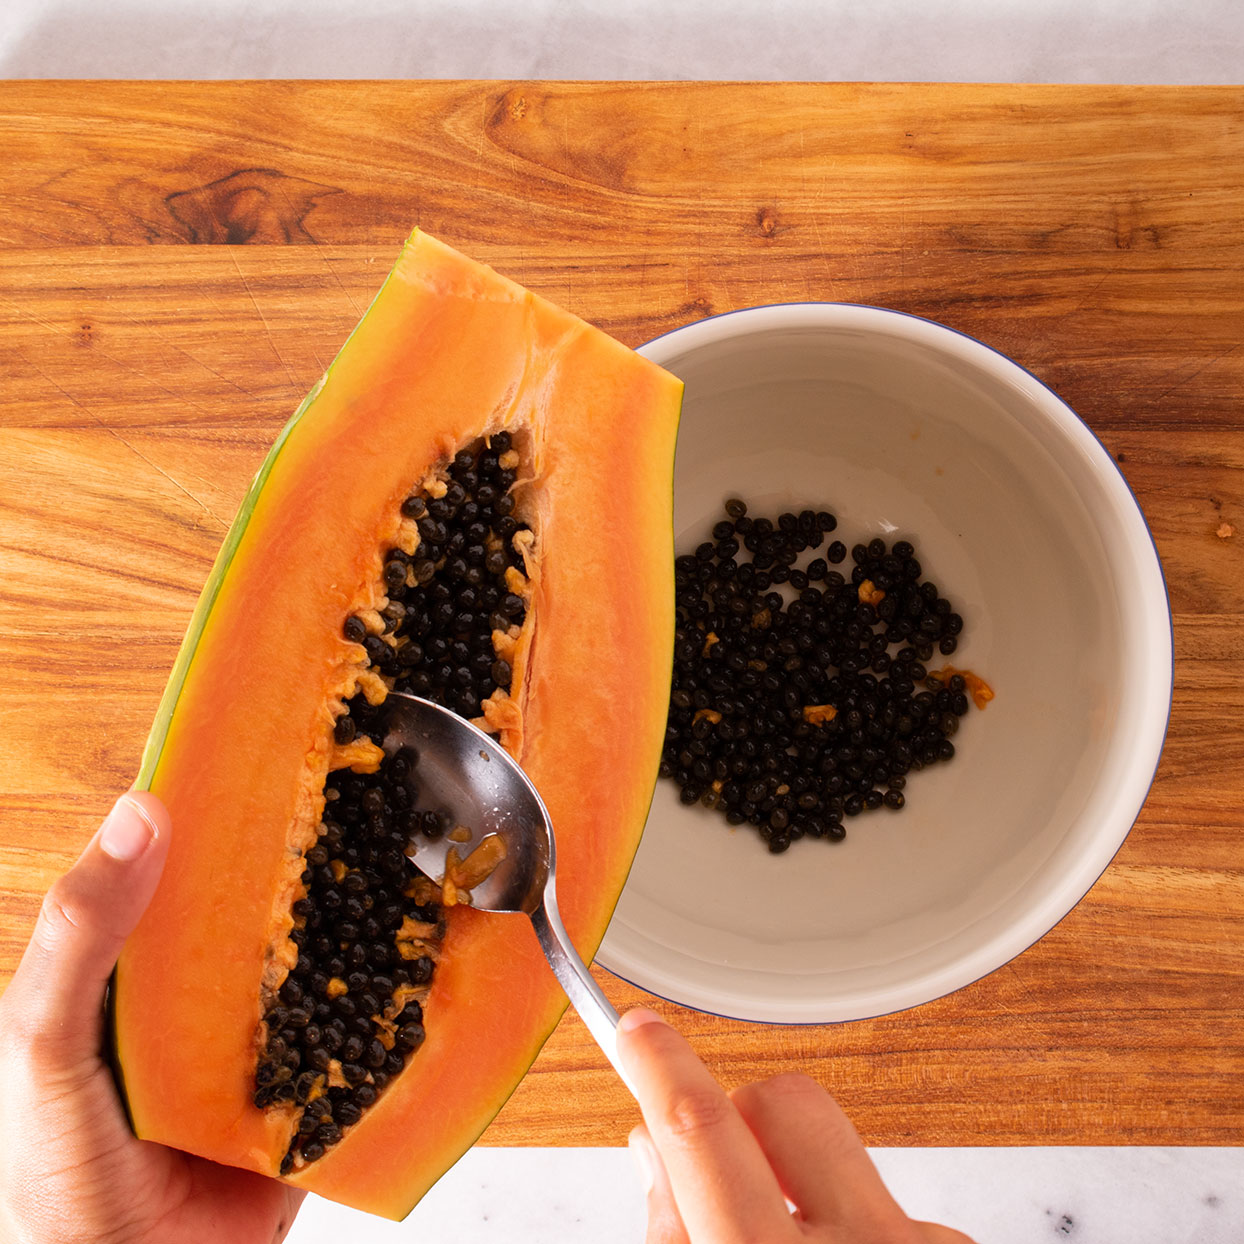 scooping seeds from a papaya with a spoon